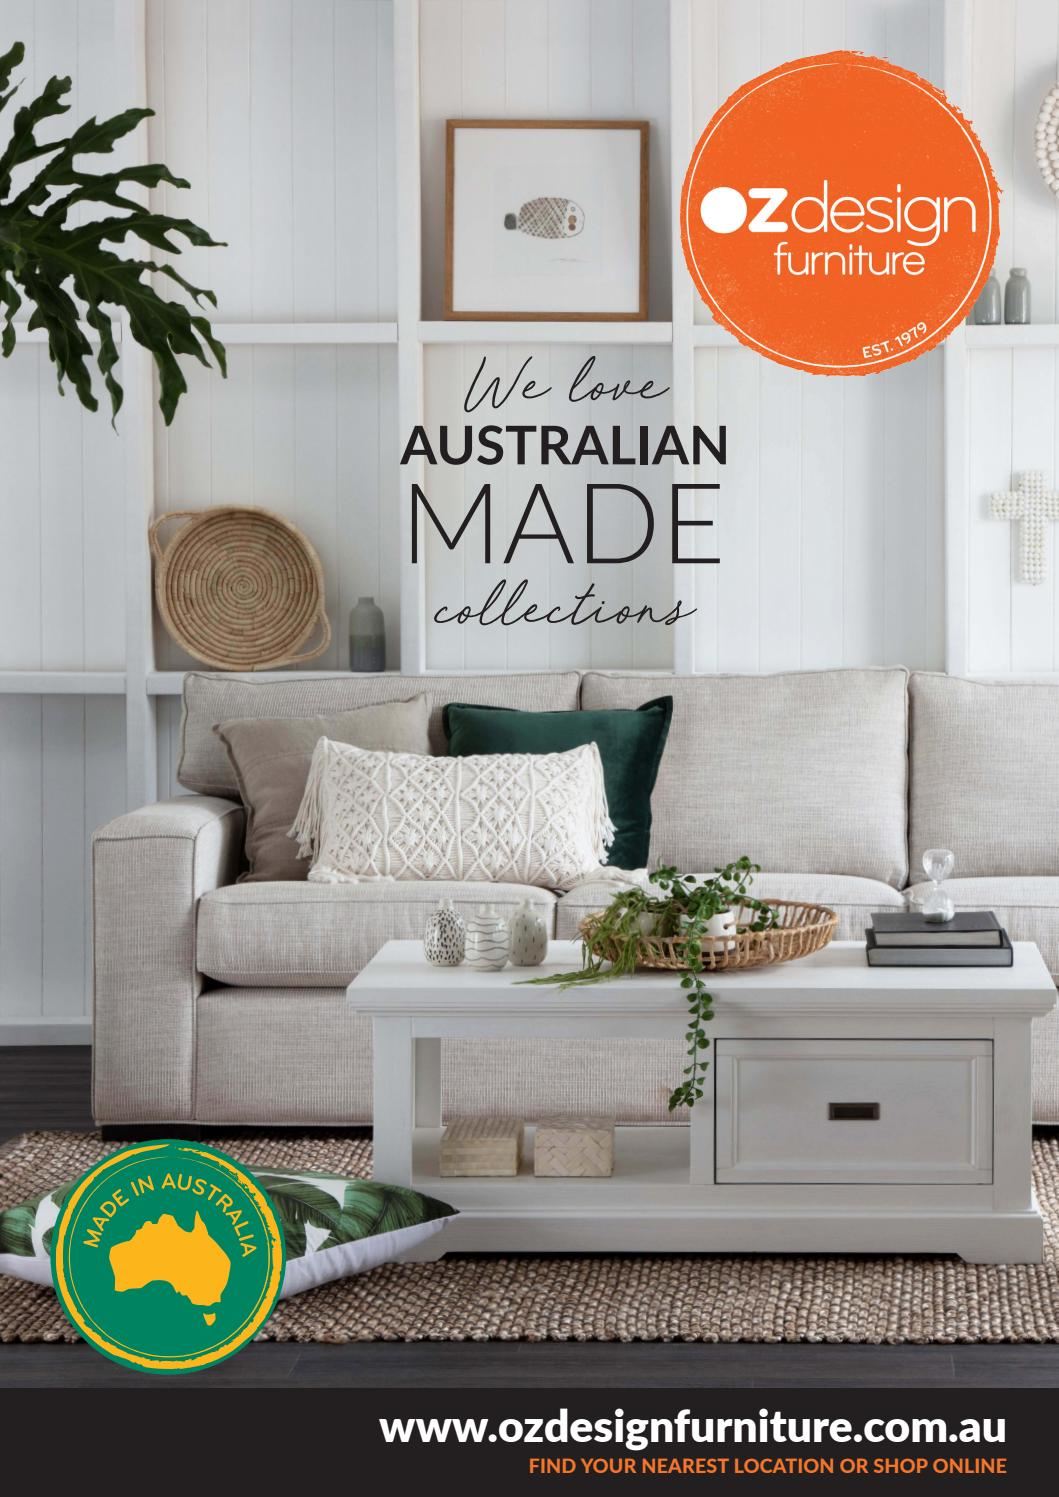 Australian Made Sofas We Love Australian Made Collections Oz Design Furniture By Oz